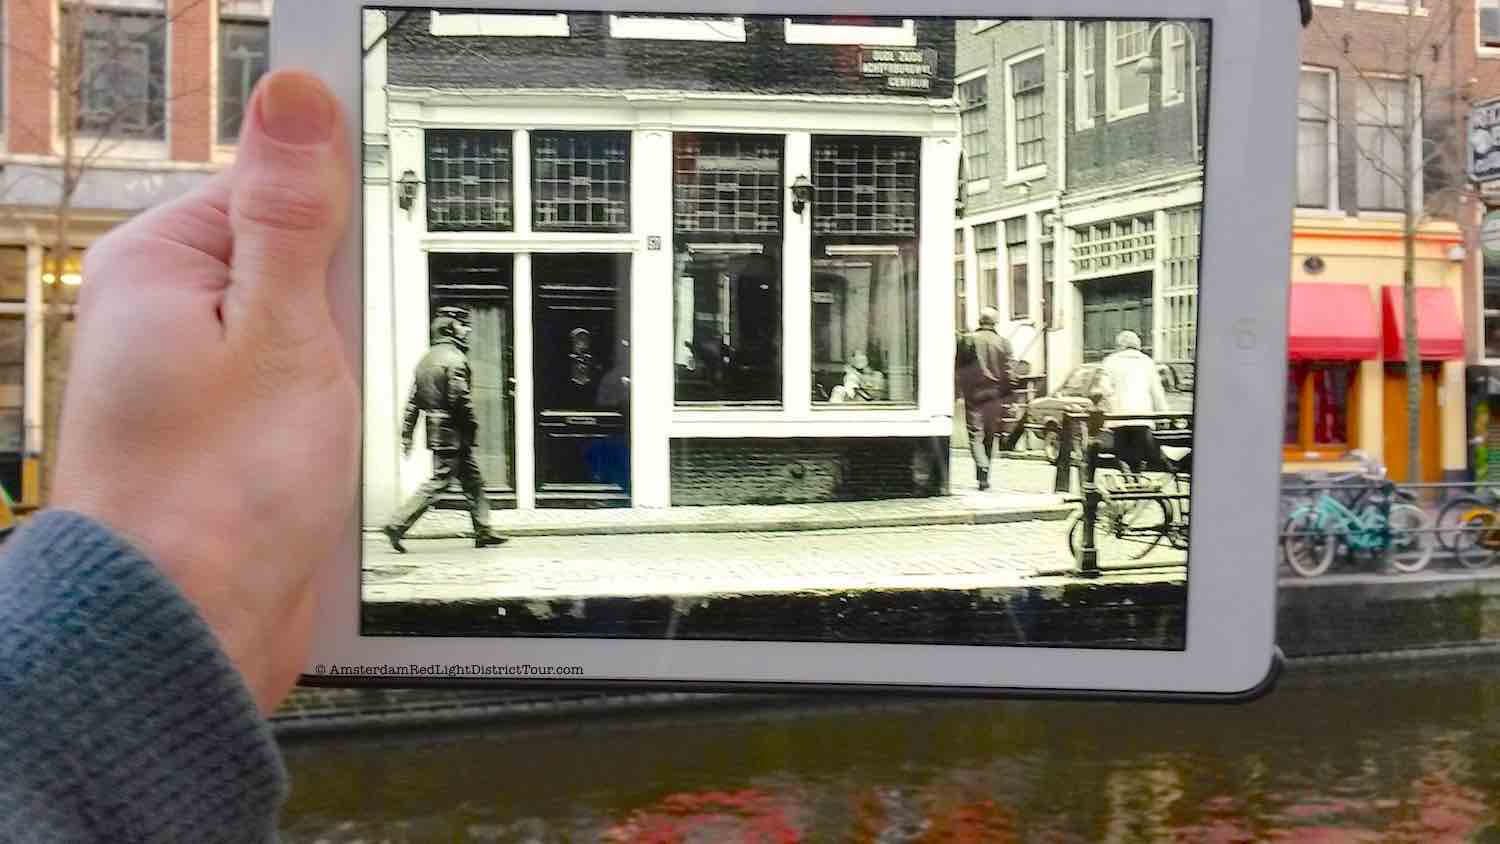 Amsterdam Red Light District Now and Then: Prostitute in a brothel